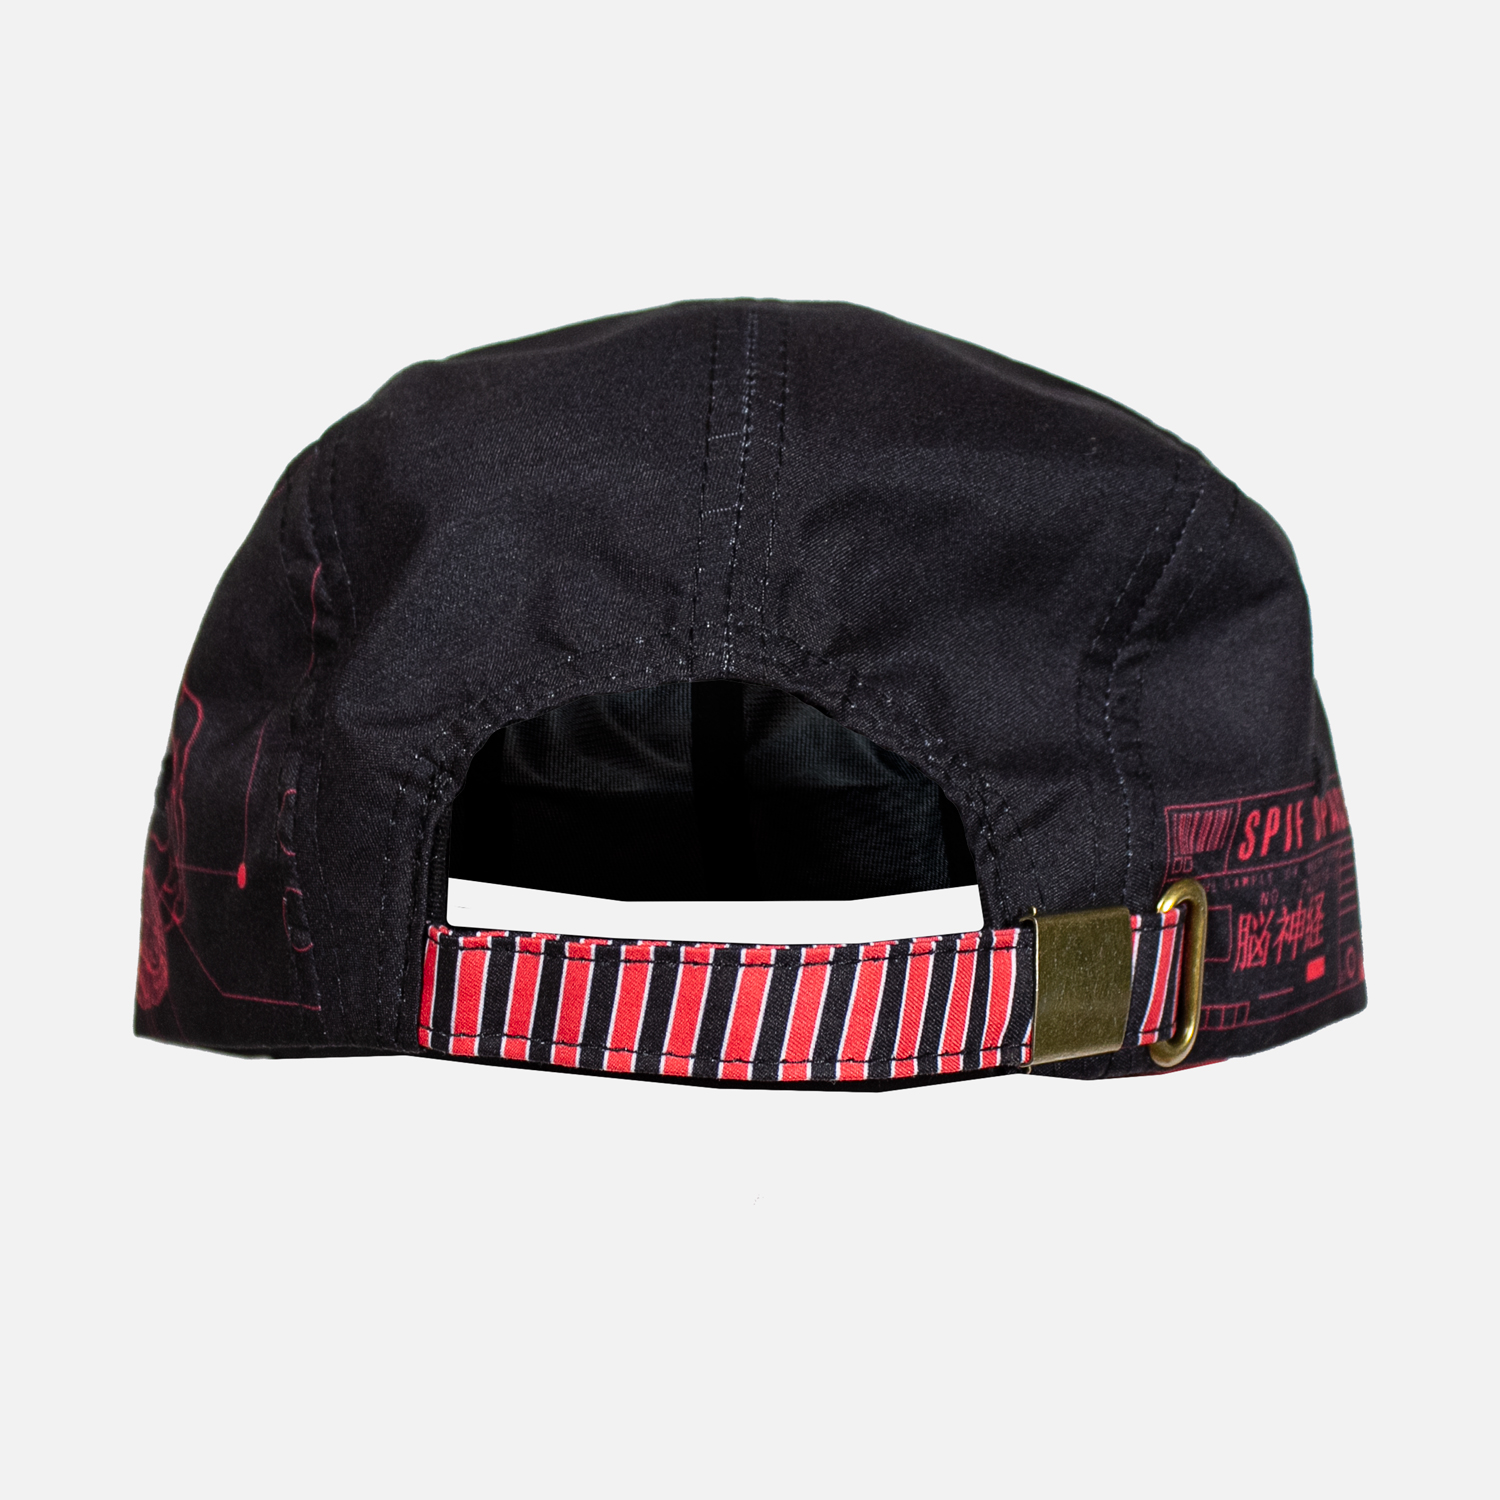 SLEEPING GOD 5-PANEL